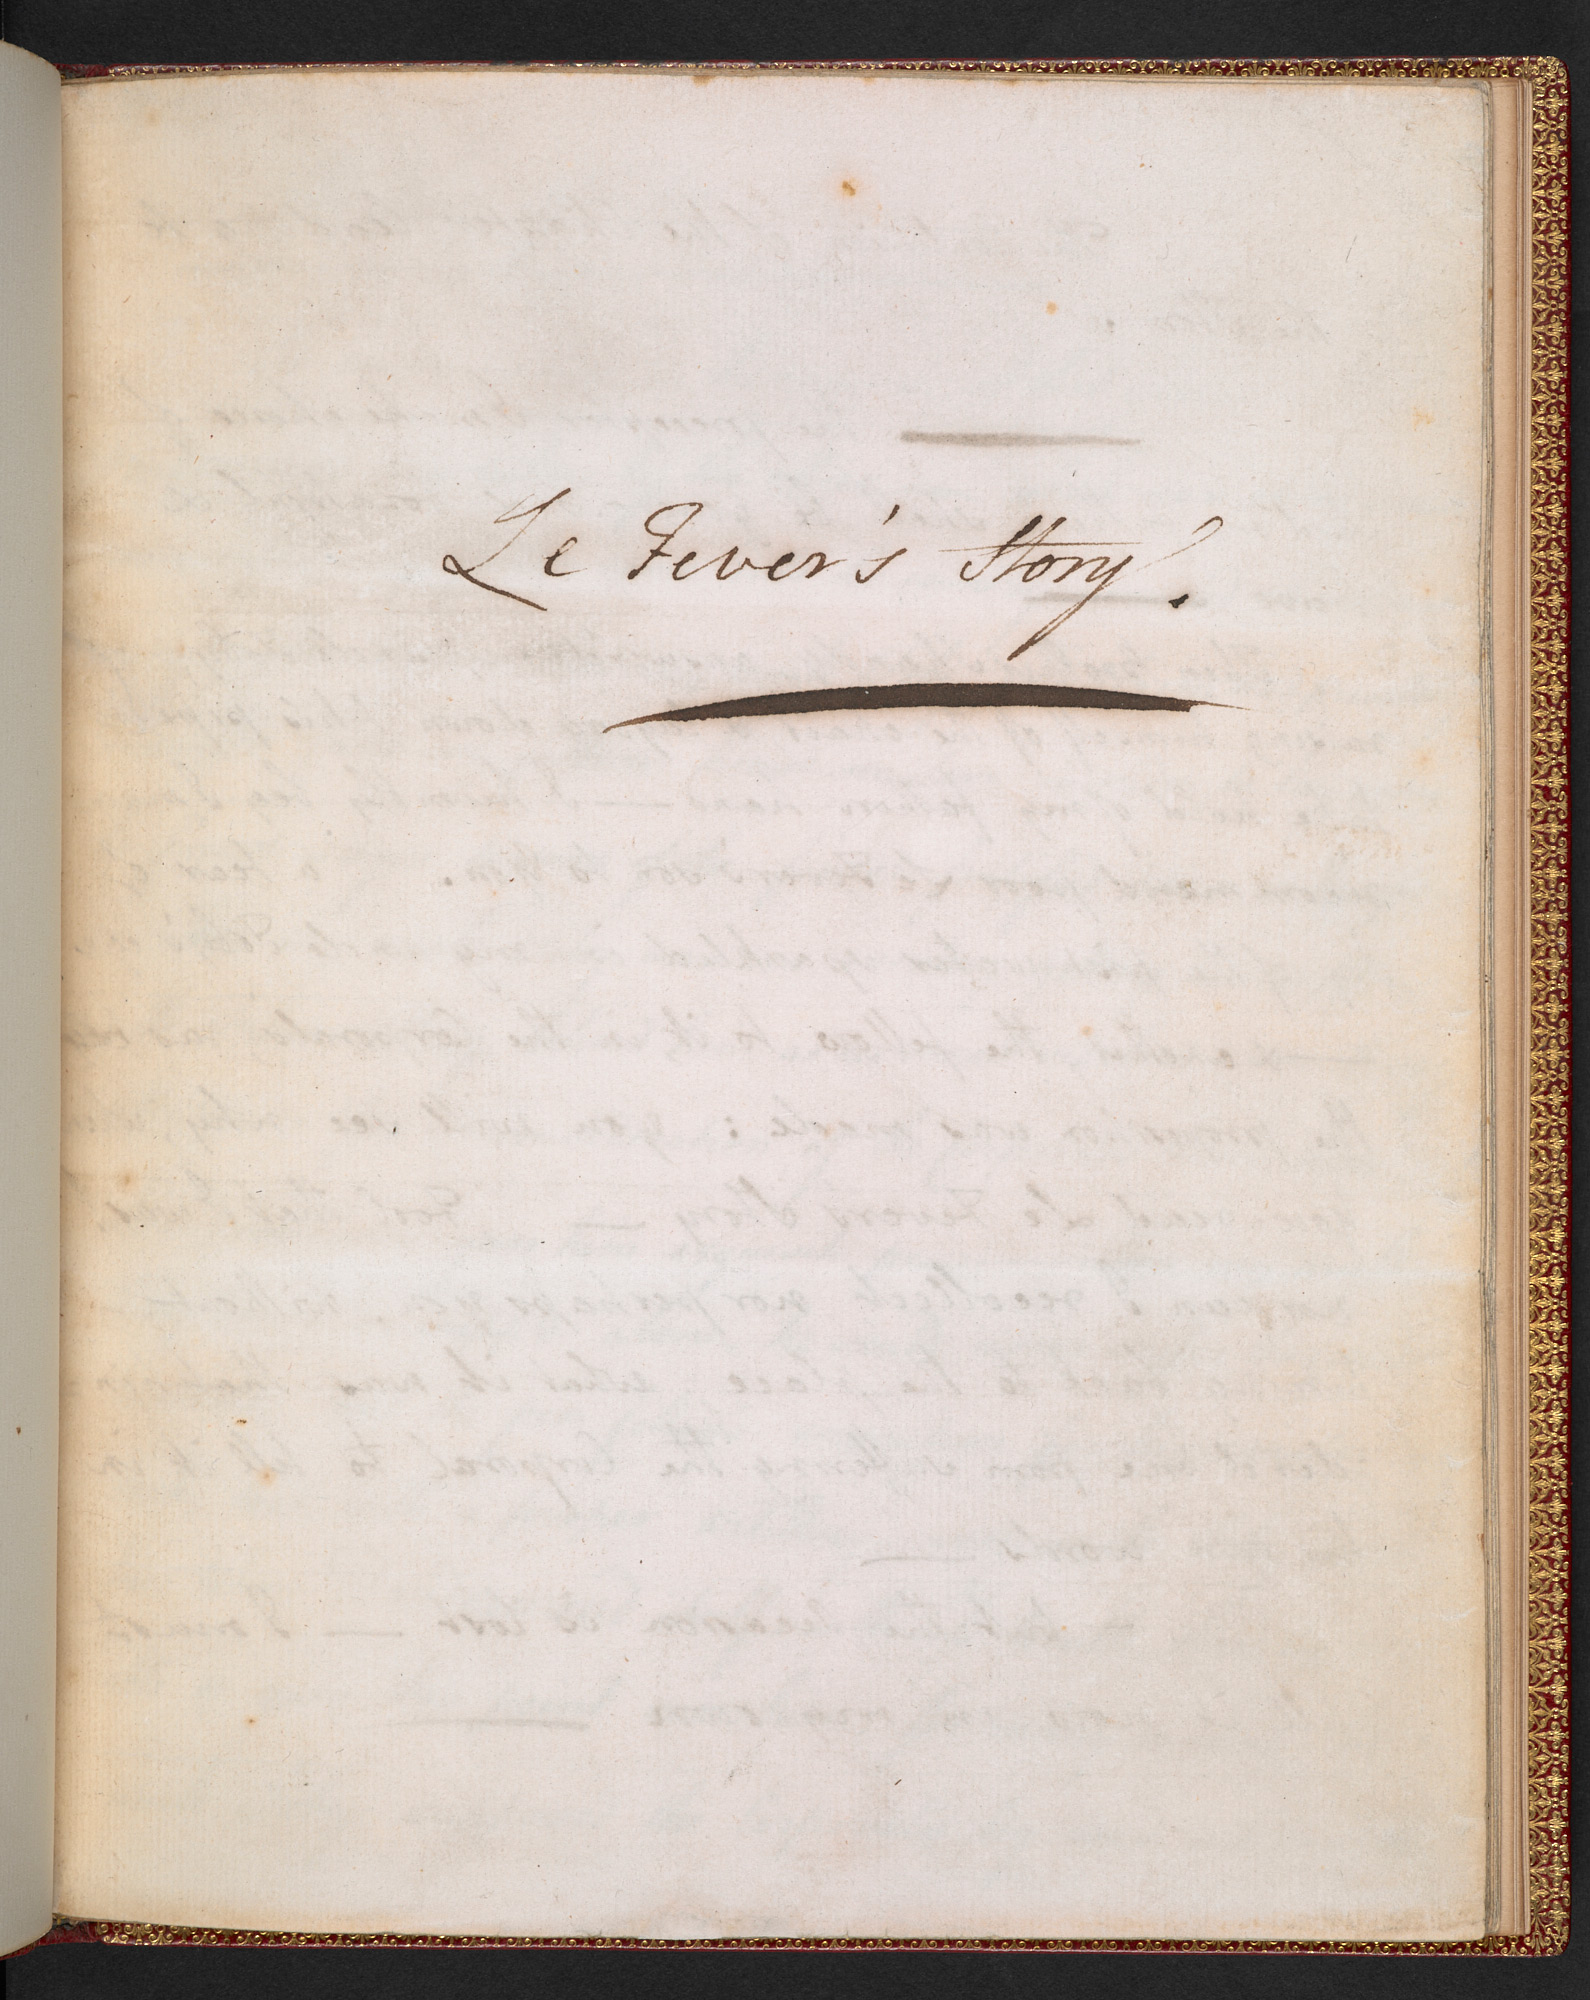 Manuscript of 'Le Fever's story' from Laurence Sterne's Tristram Shandy